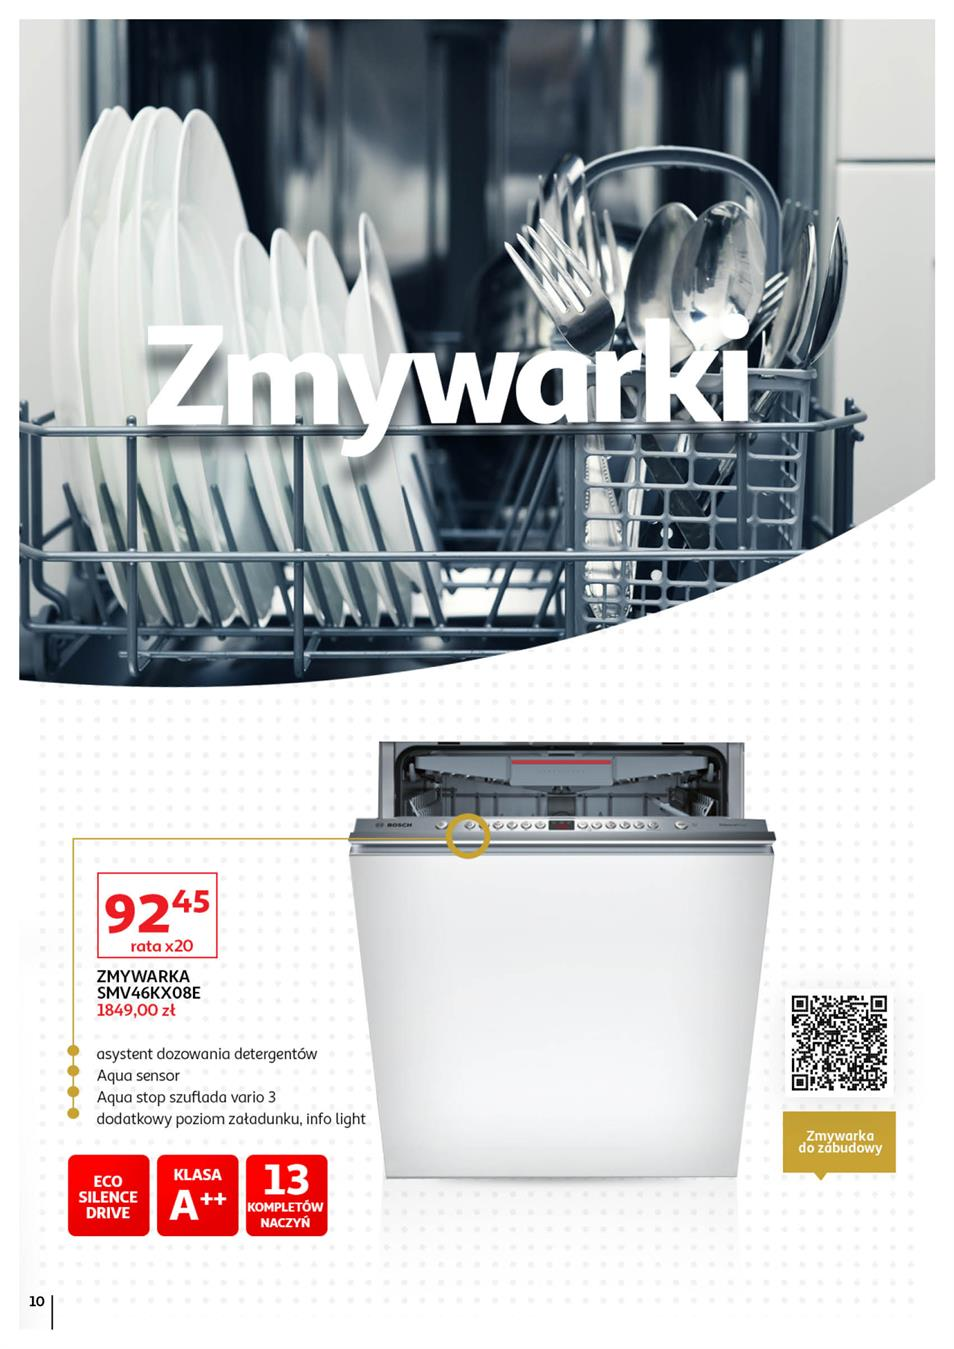 Gazetka Auchan Polska Sp. z o.o. nr 10 od 2019-09-05 do 2019-10-02